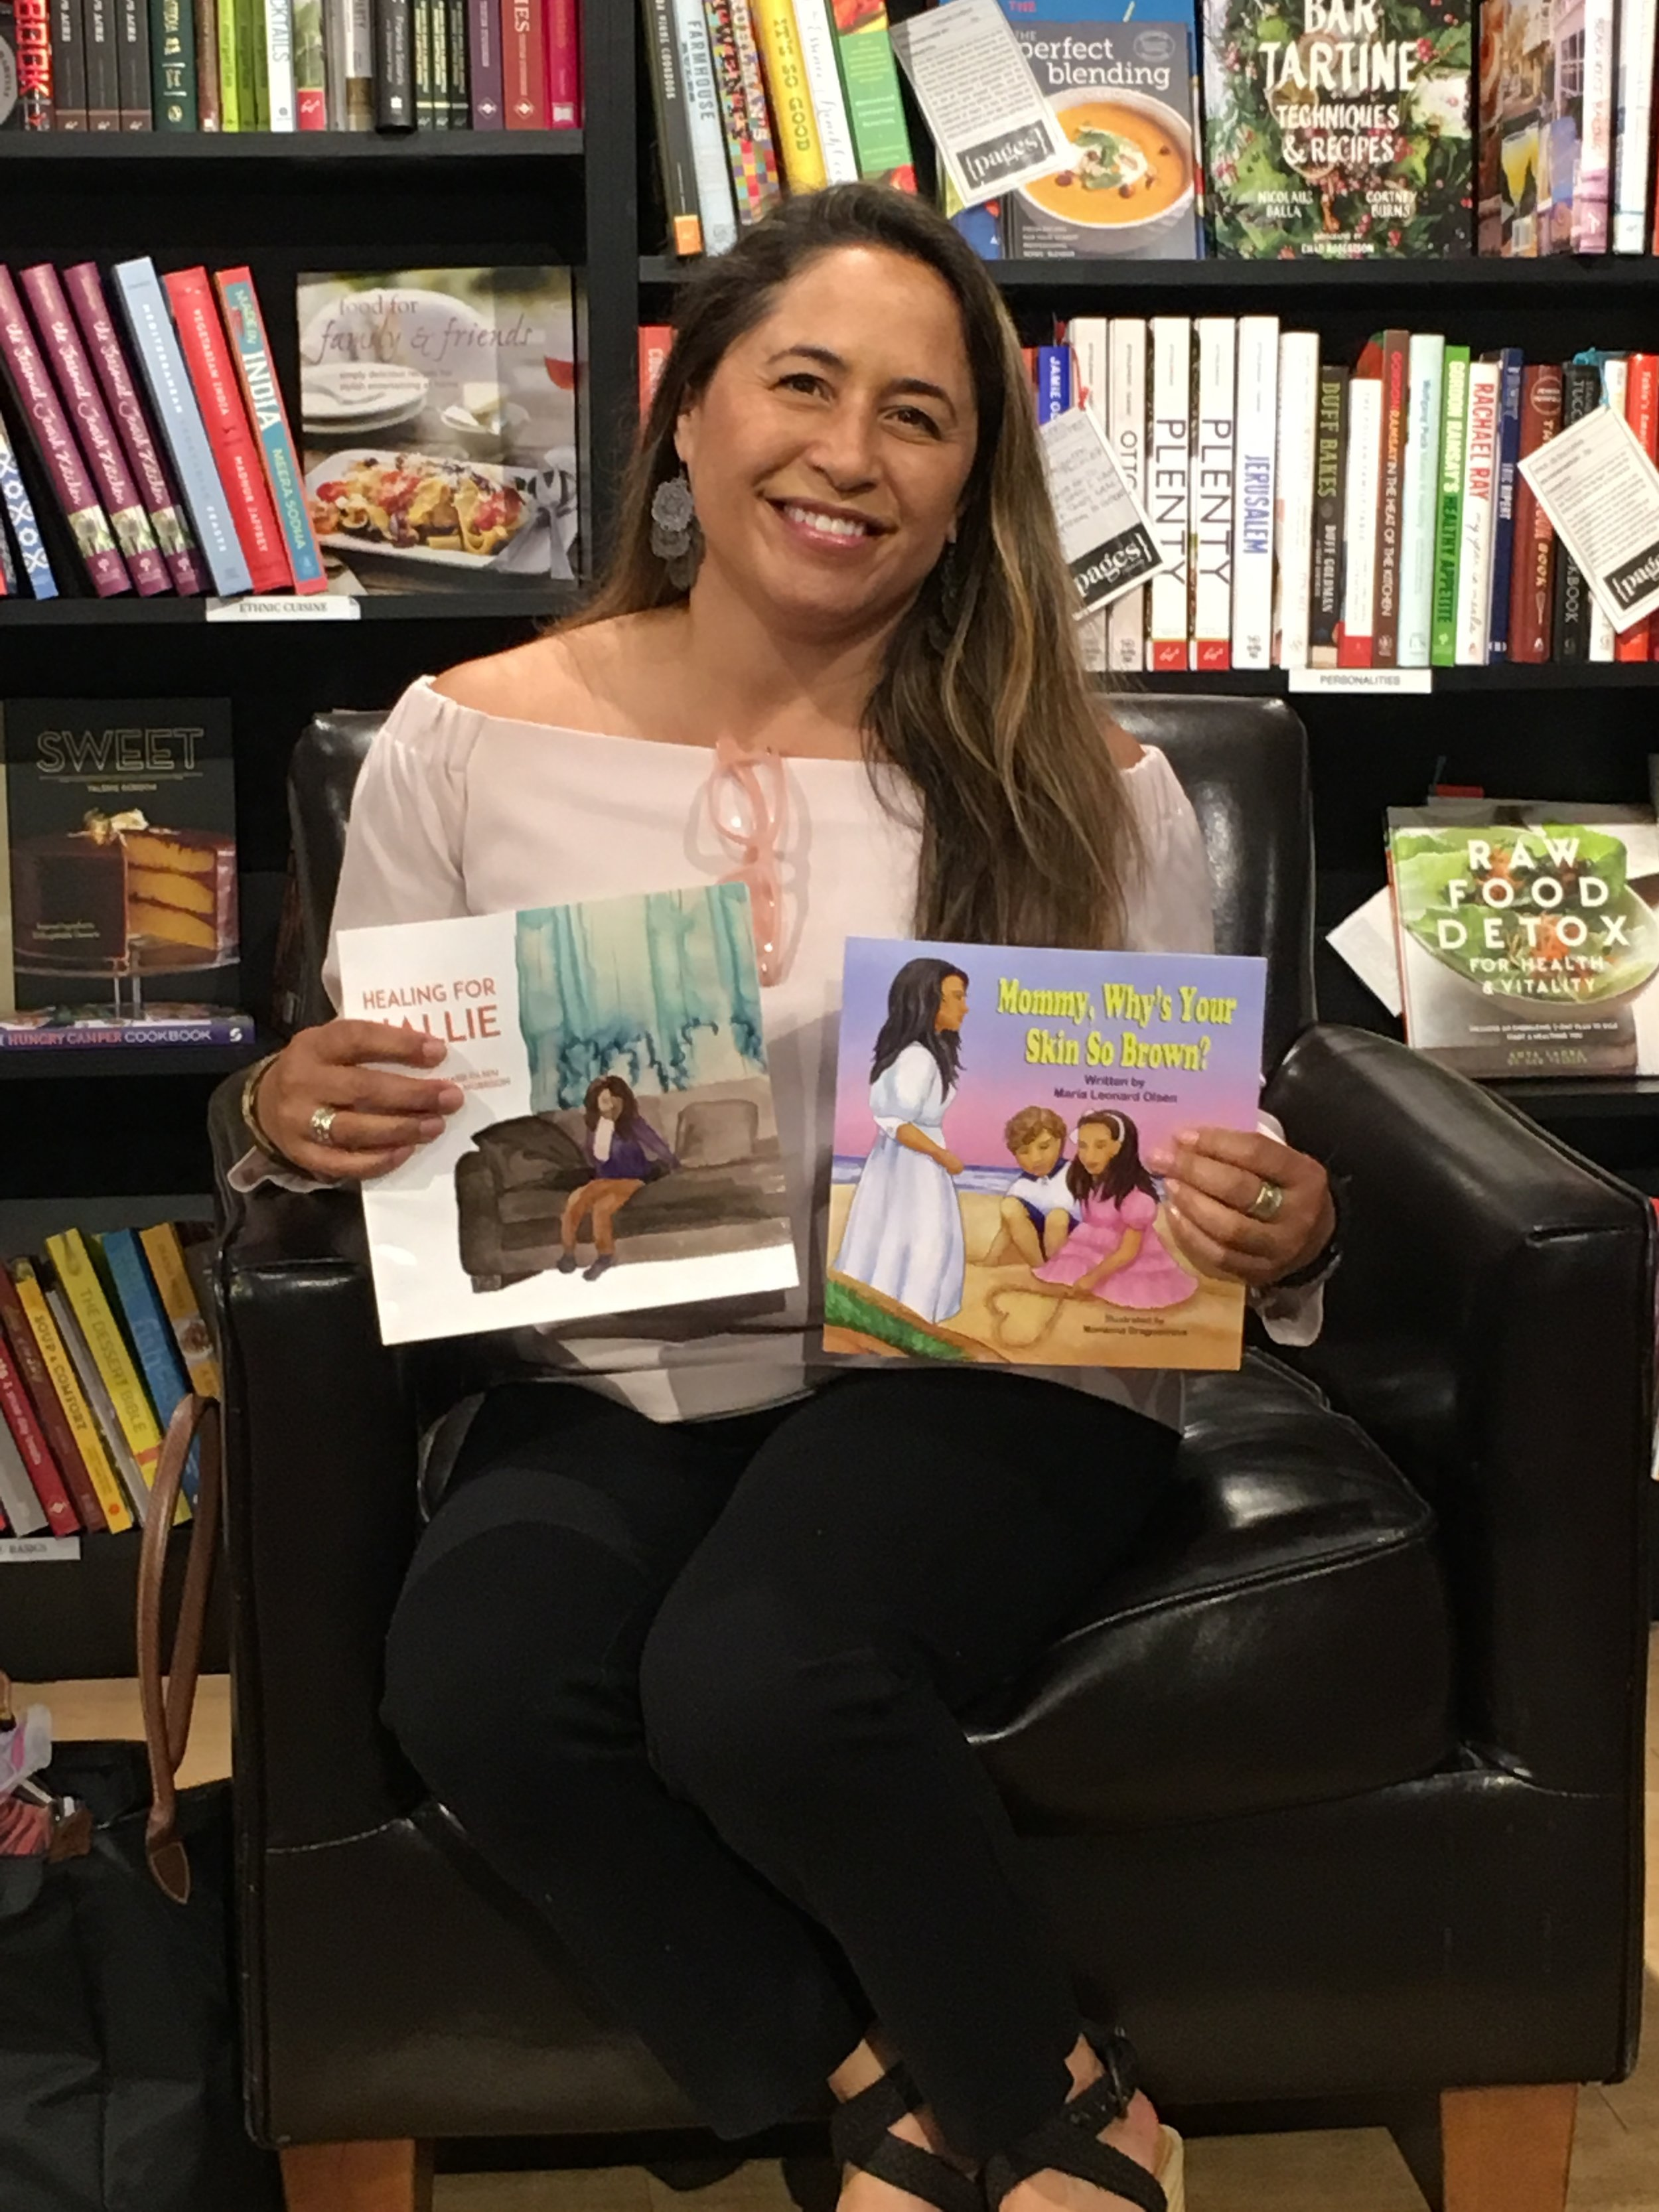 Childrens Books at Pages Event.JPG